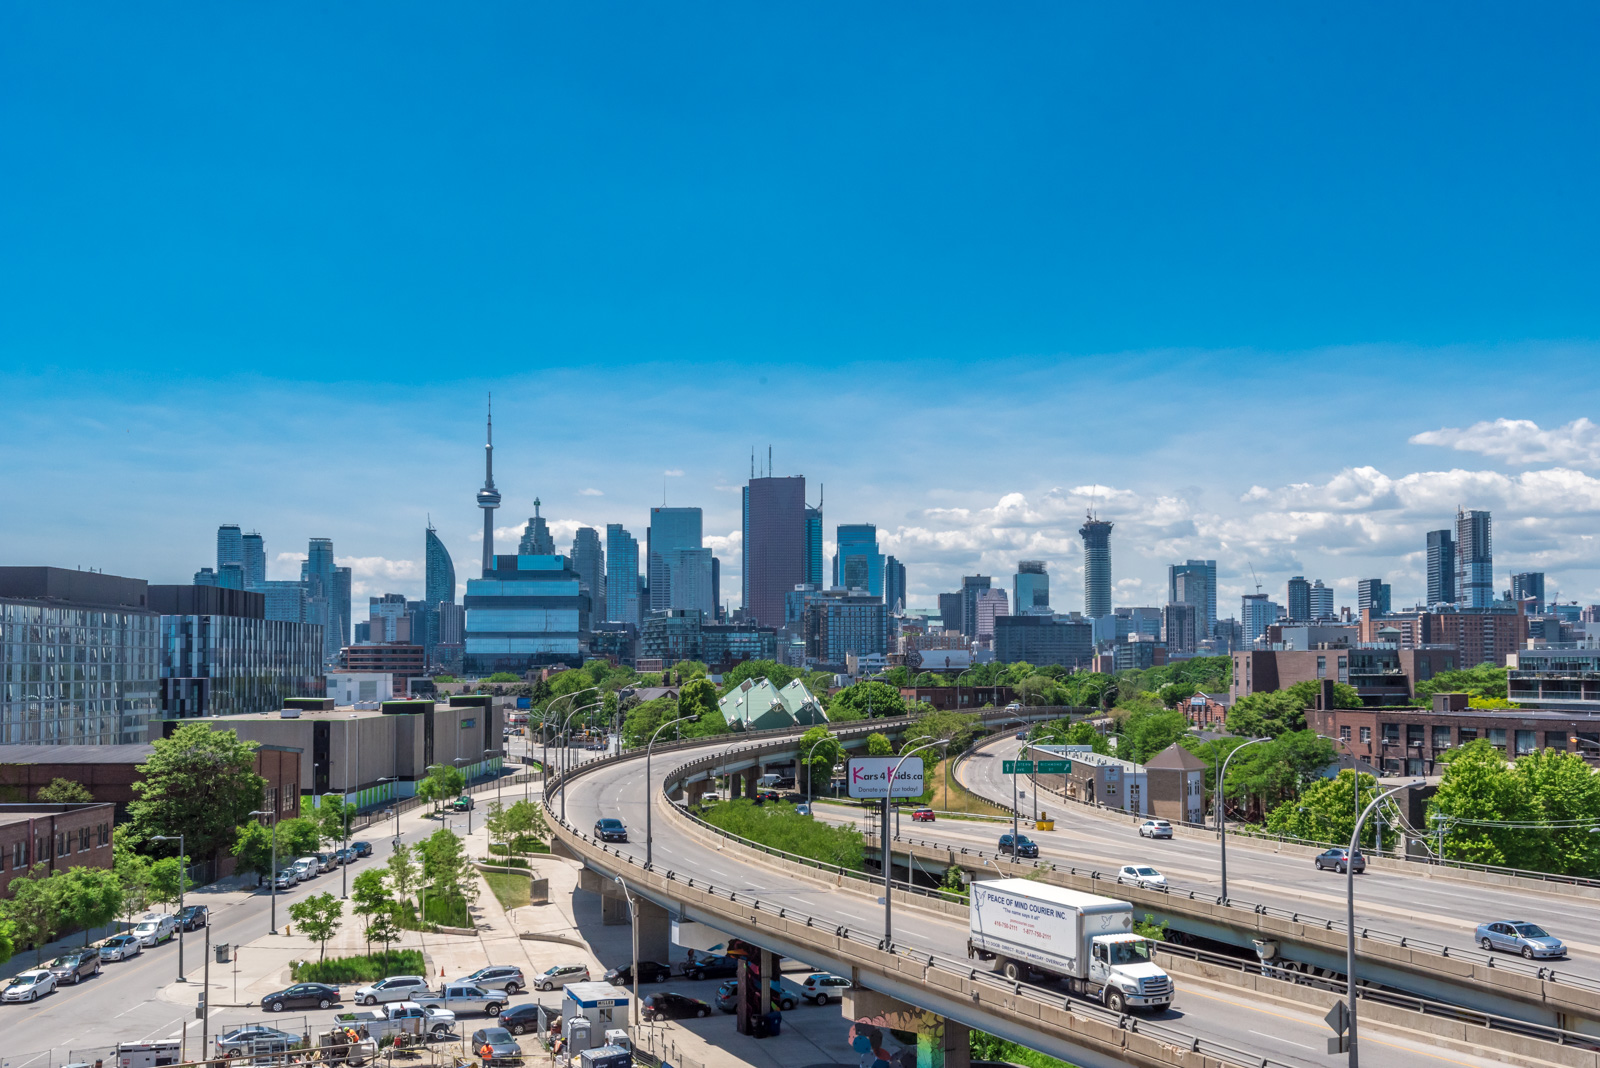 Finally, we have a photo of the Toronto skyline.